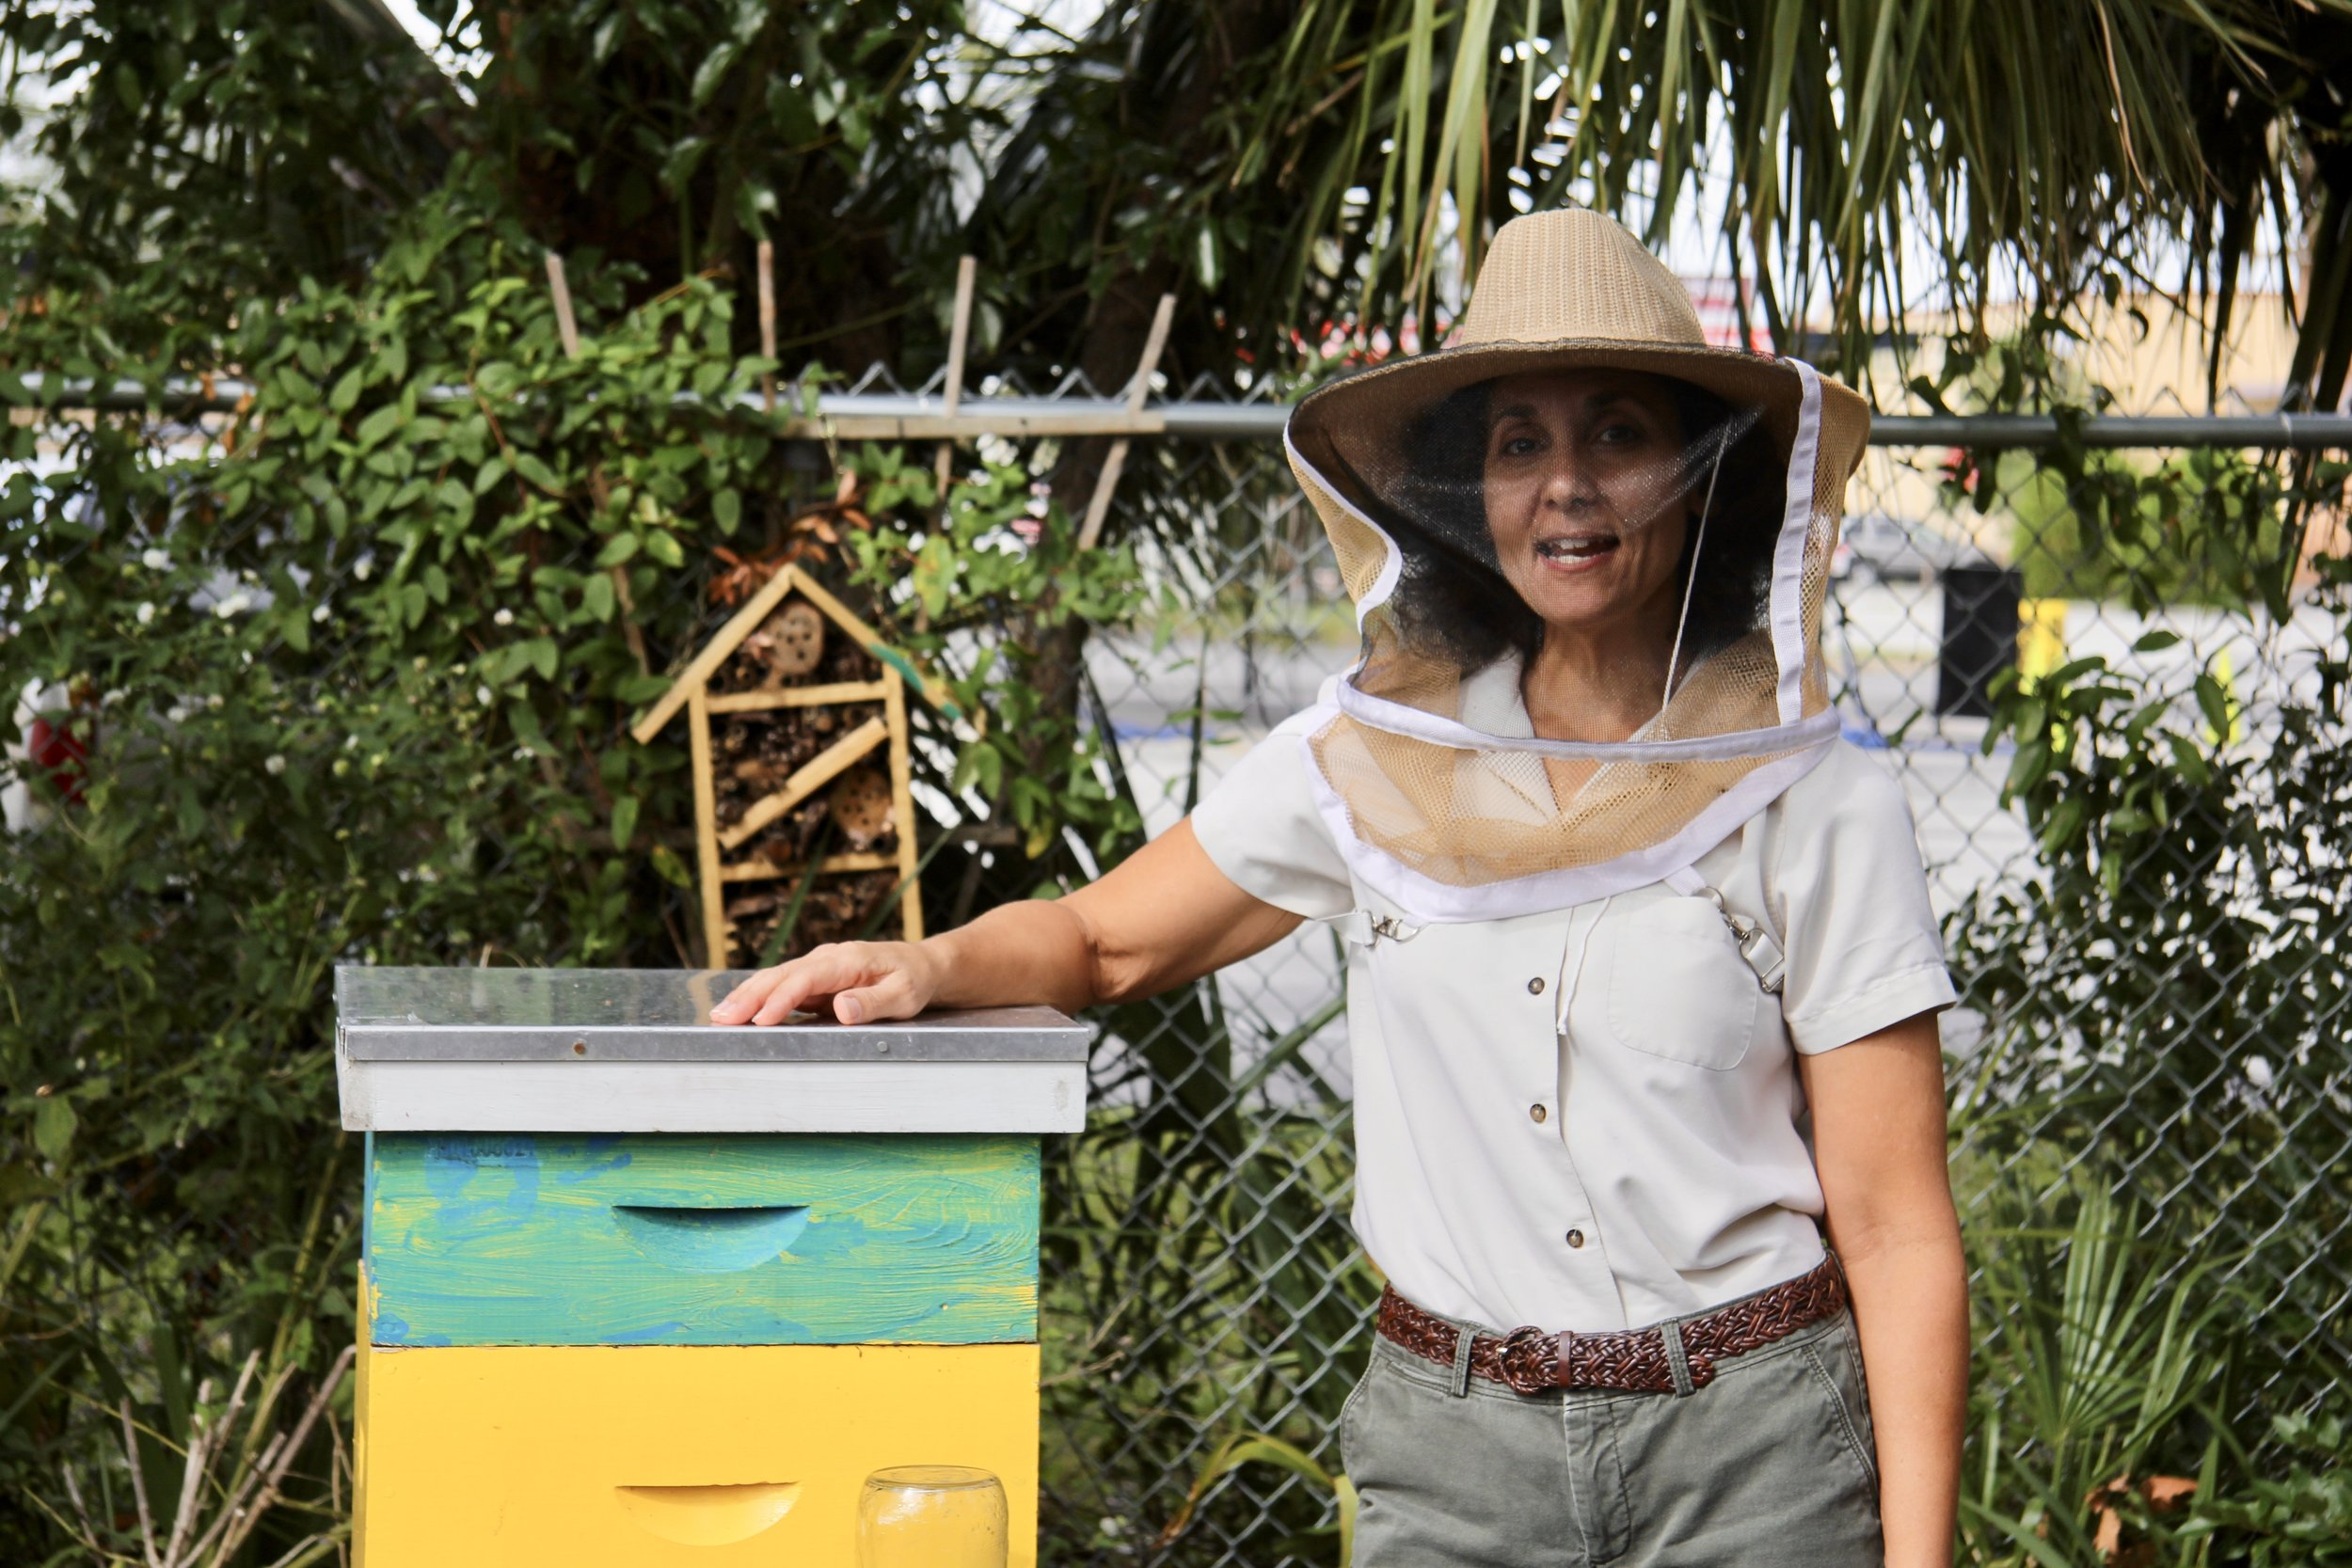 Marilyn Young, Jacksonville beekeeper, stands next to one of her hives.